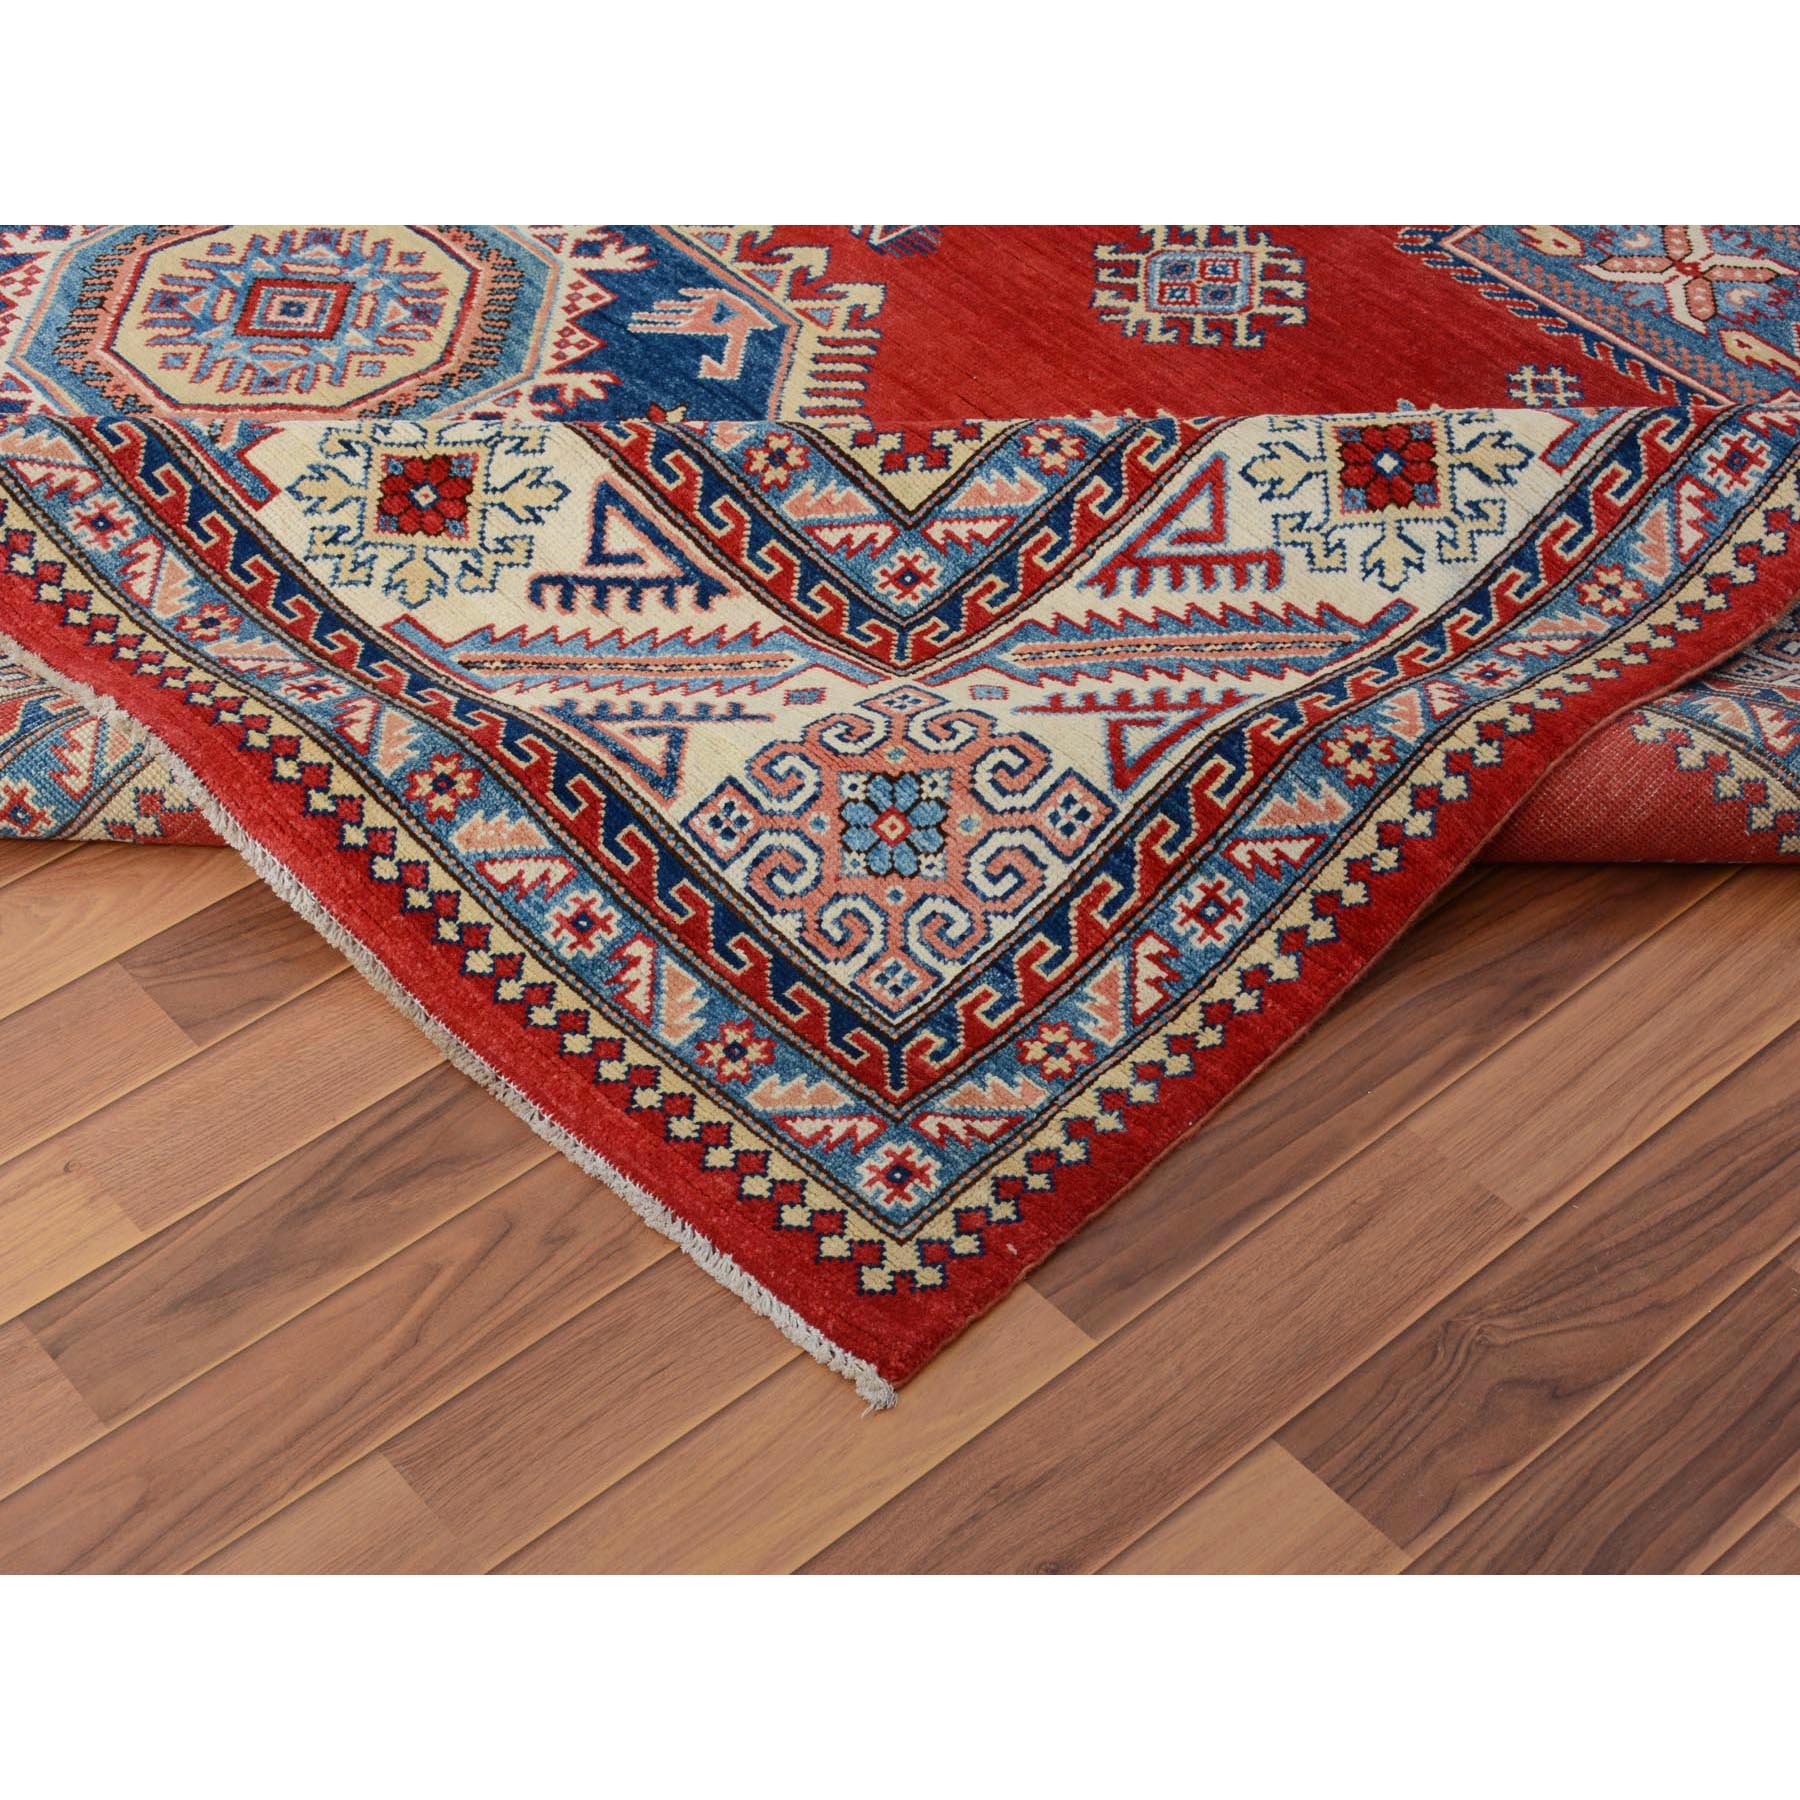 10-x13-10  Red Special kazak All Over Design Pure wool Hand Knotted Oriental Rug